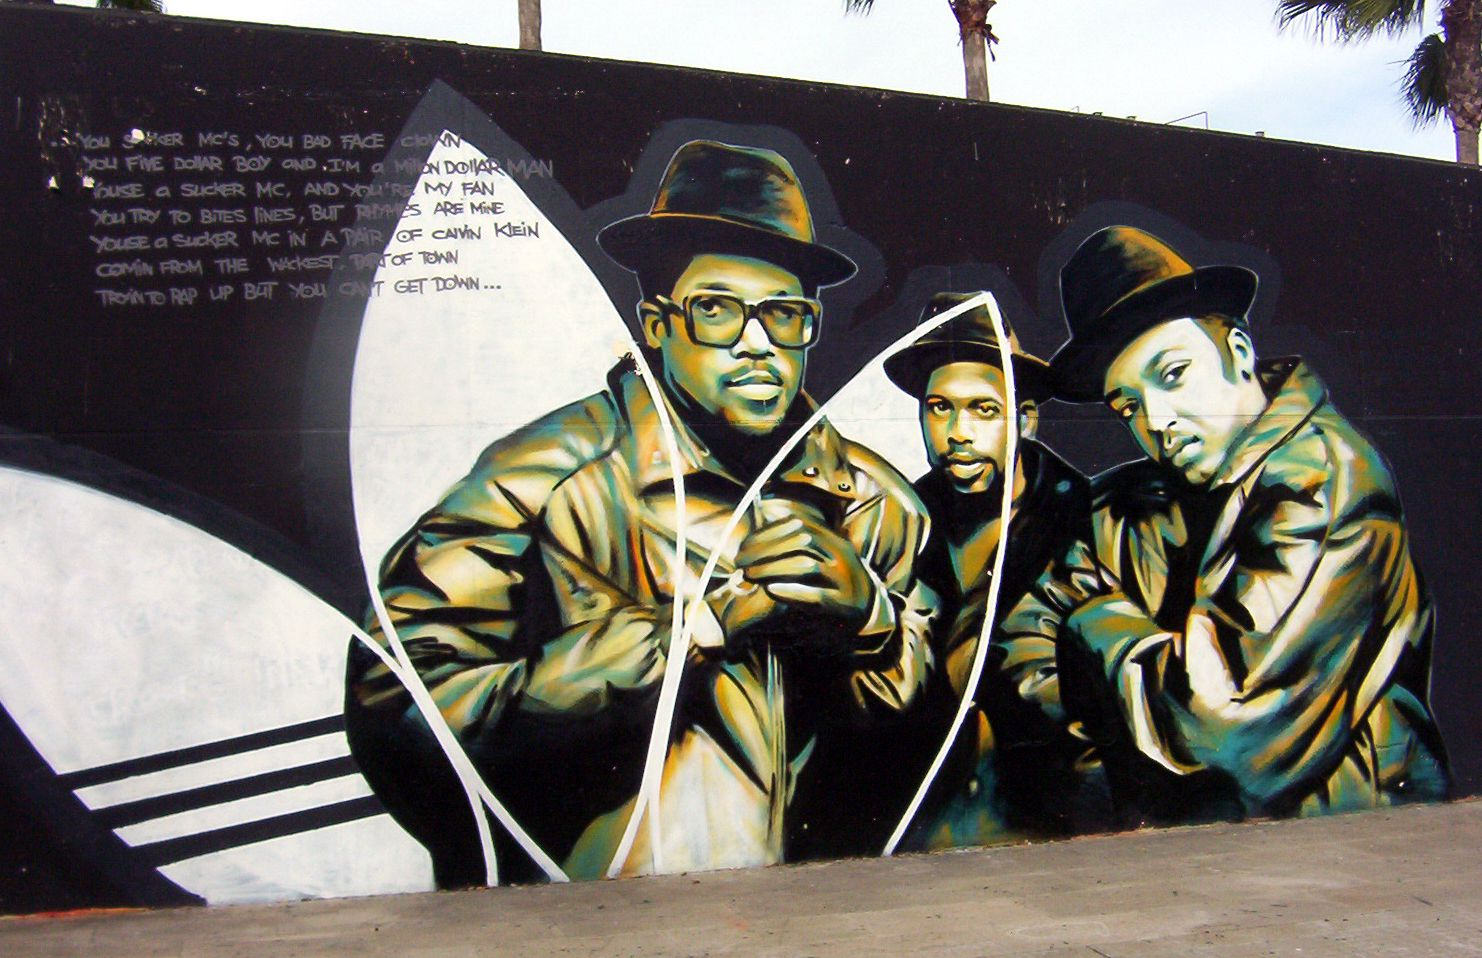 Your graffiti wall - Find This Pin And More On The World Is Your Canvas Run Dmc Adidas Graffiti Wall